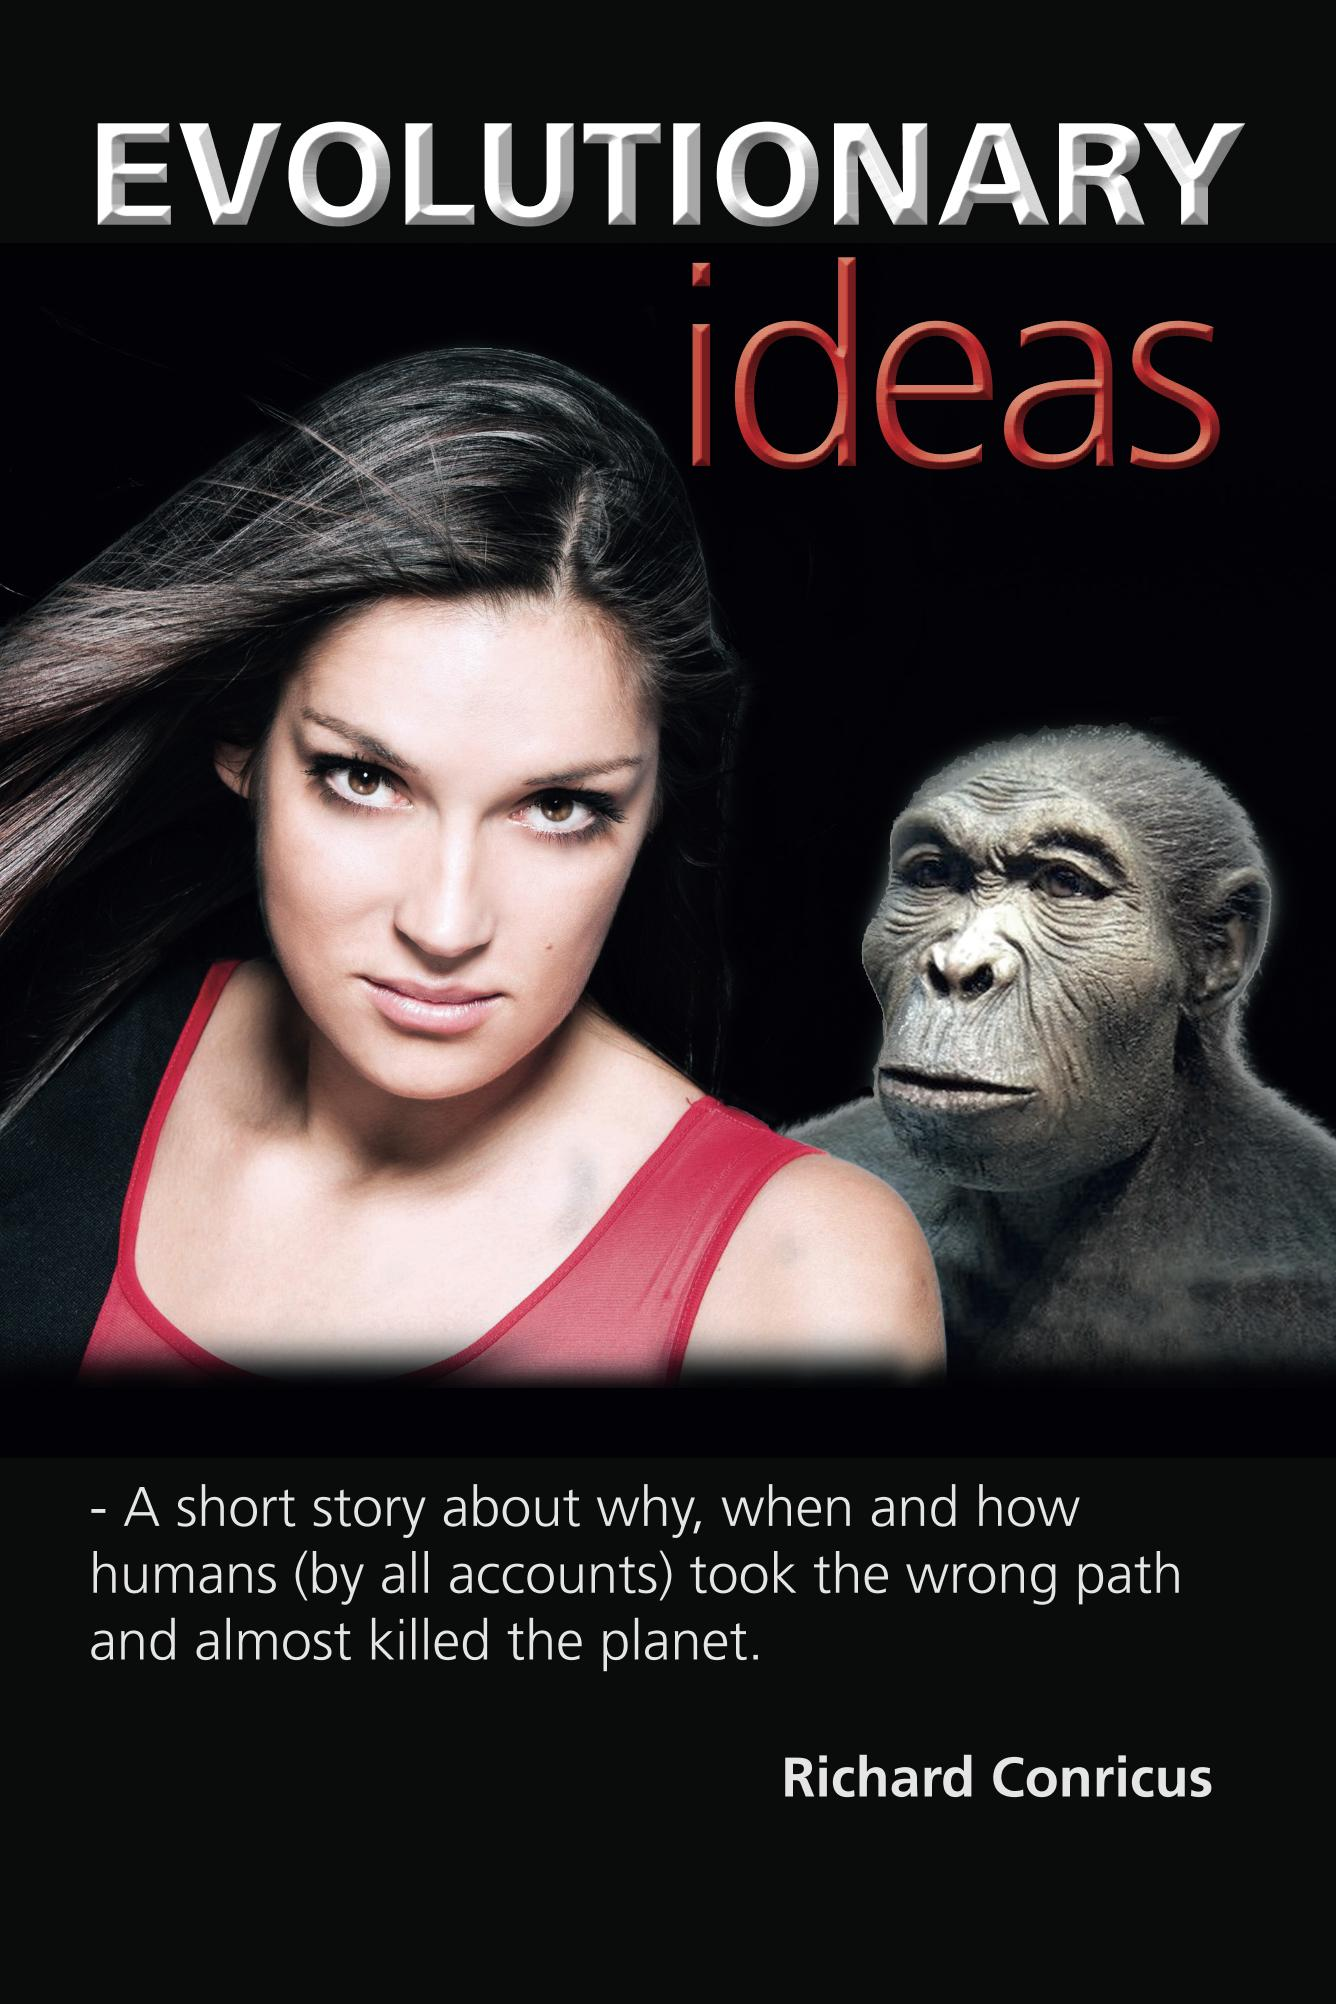 EVOLUTIONARY ideas front